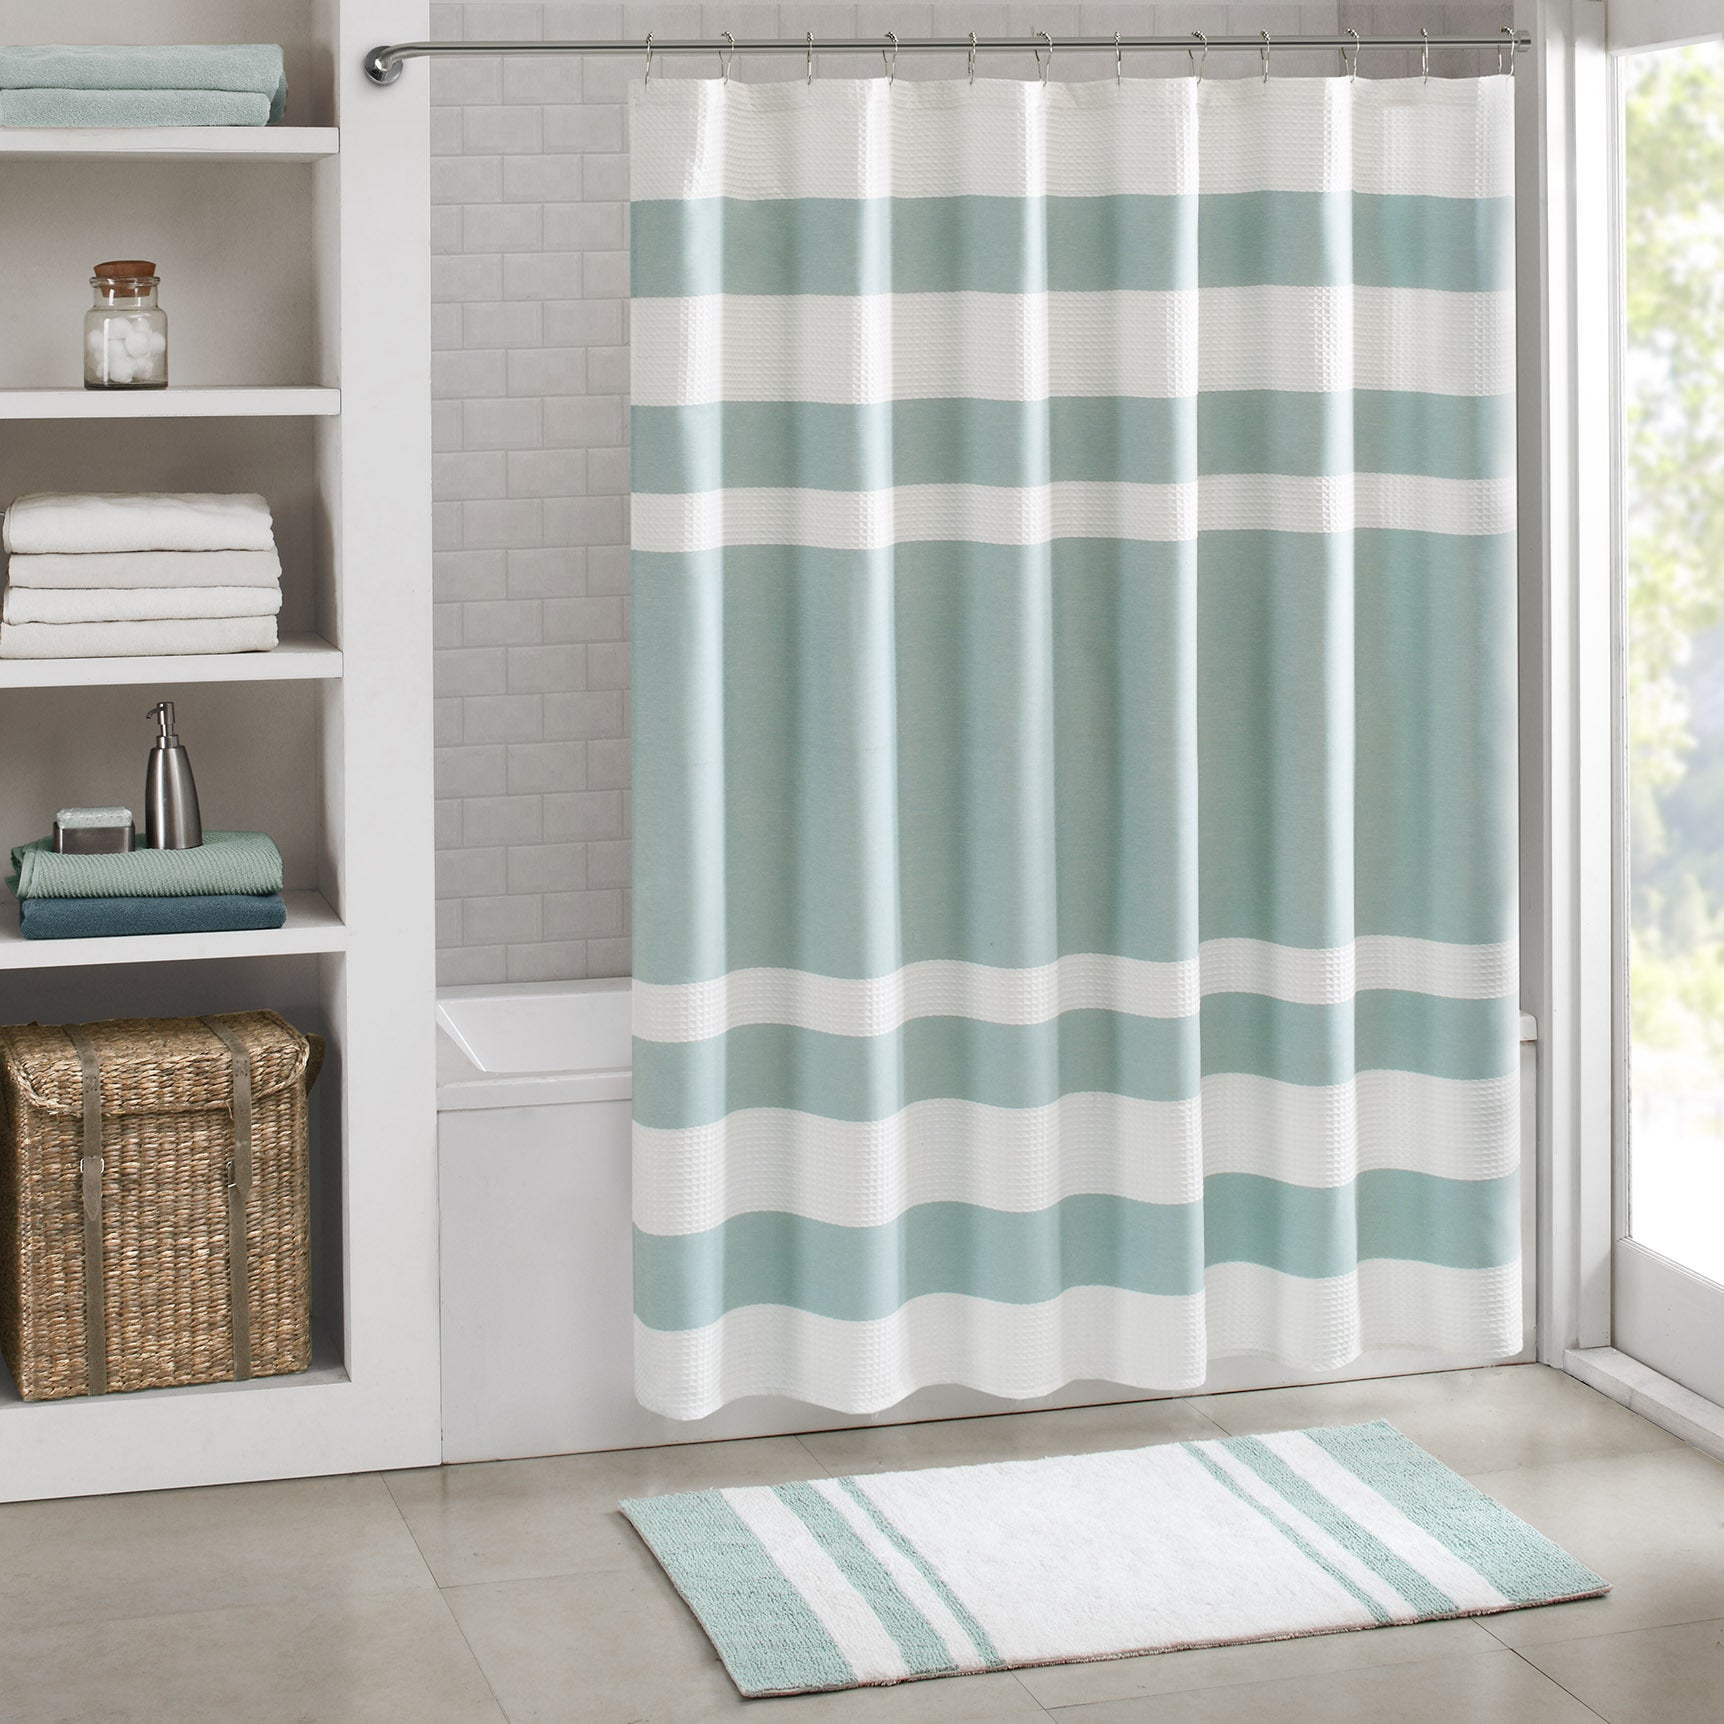 Shop Madison Park Spa Waffle Shower Curtain with 3M Treatment - Free ...